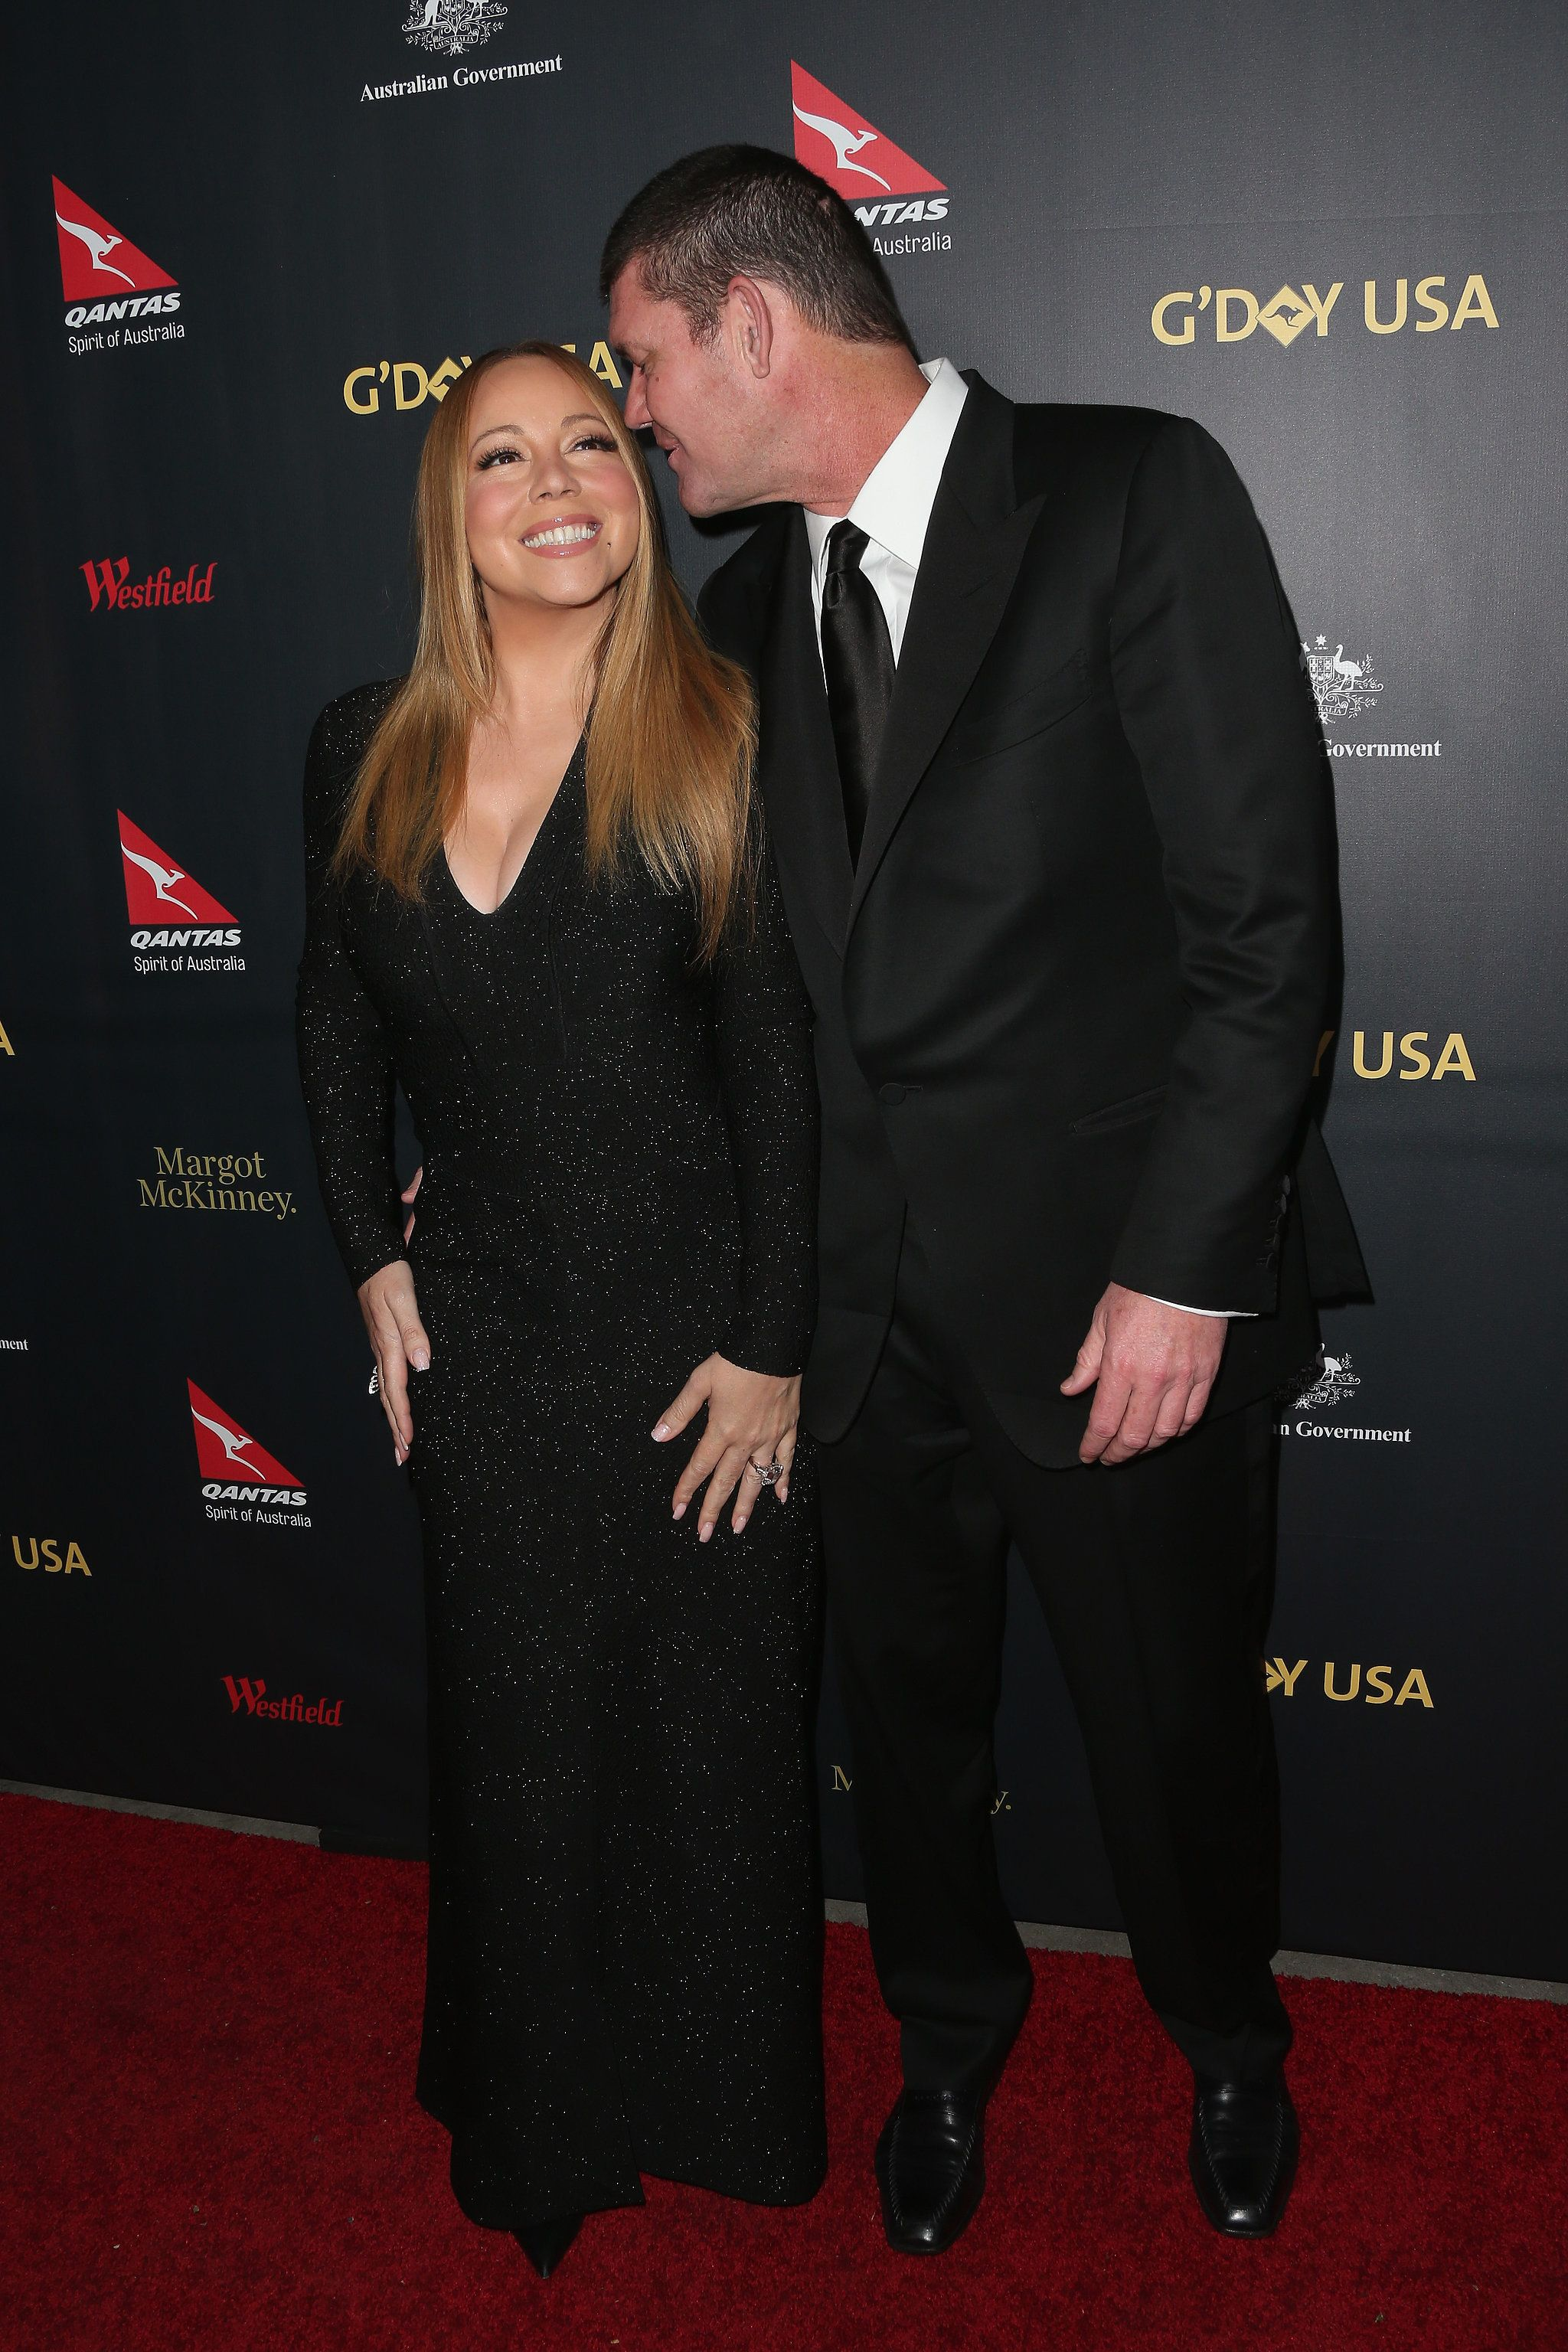 g'day usa gala 2016 | mariah carey + james packer